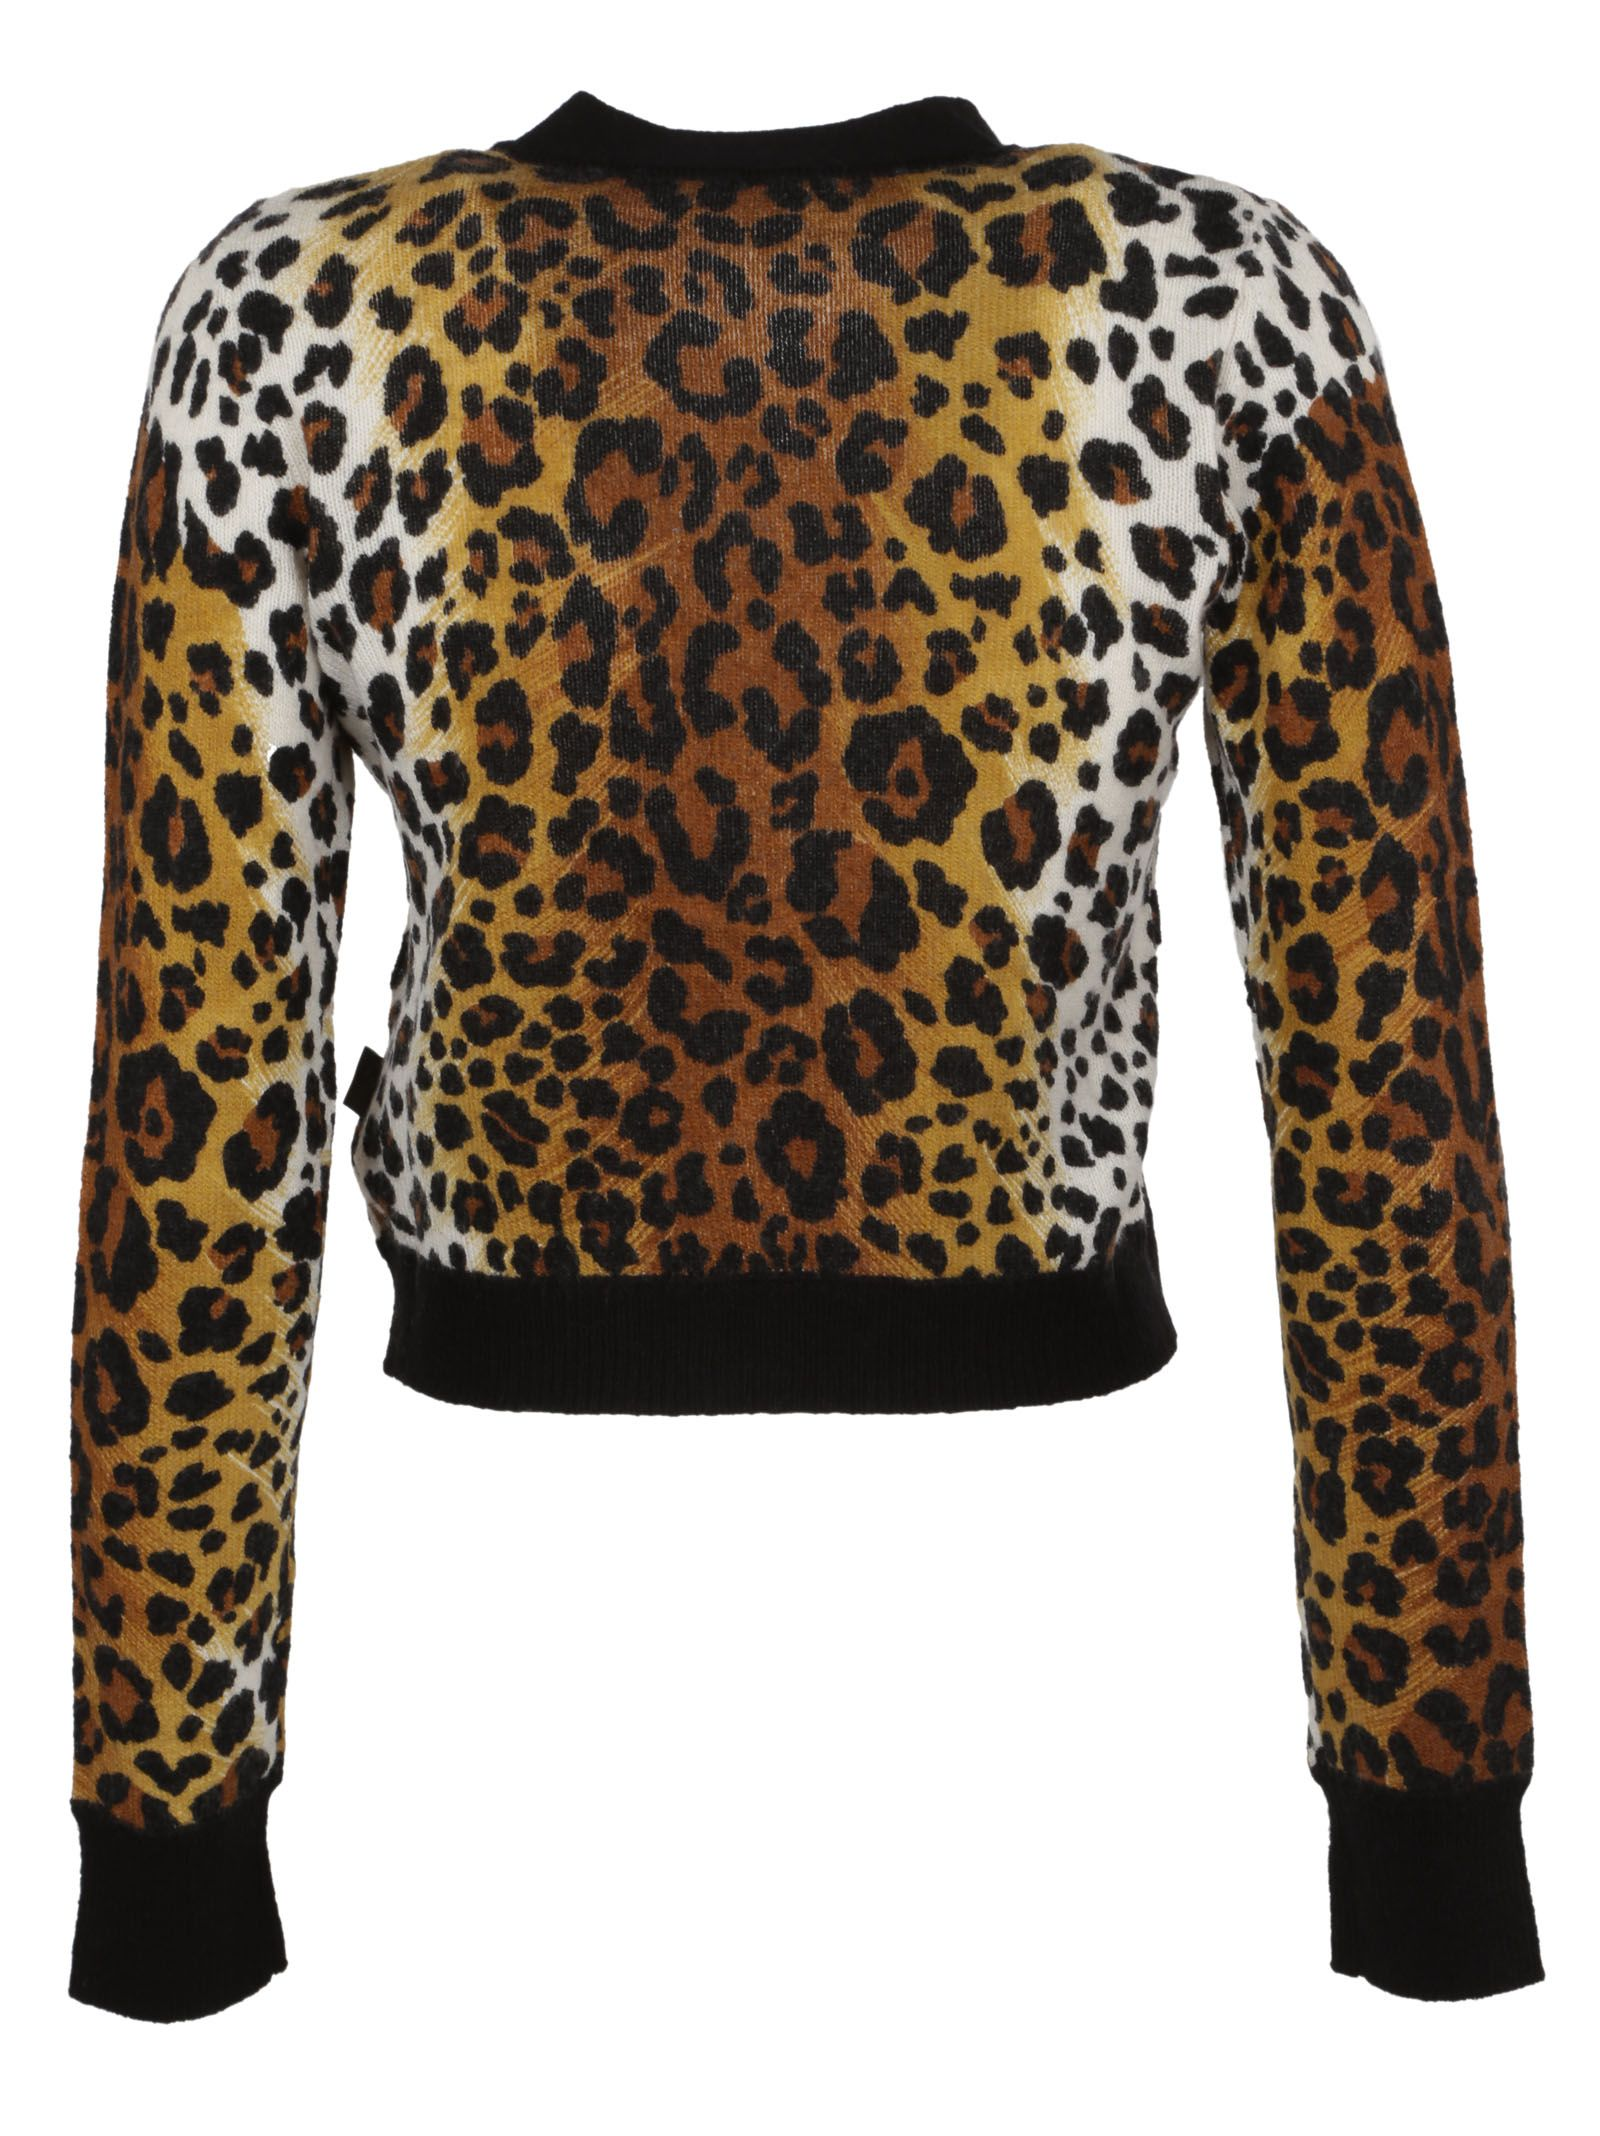 Love Moschino - Love Moschino Leopard Print Cardigan - Multicolor ...